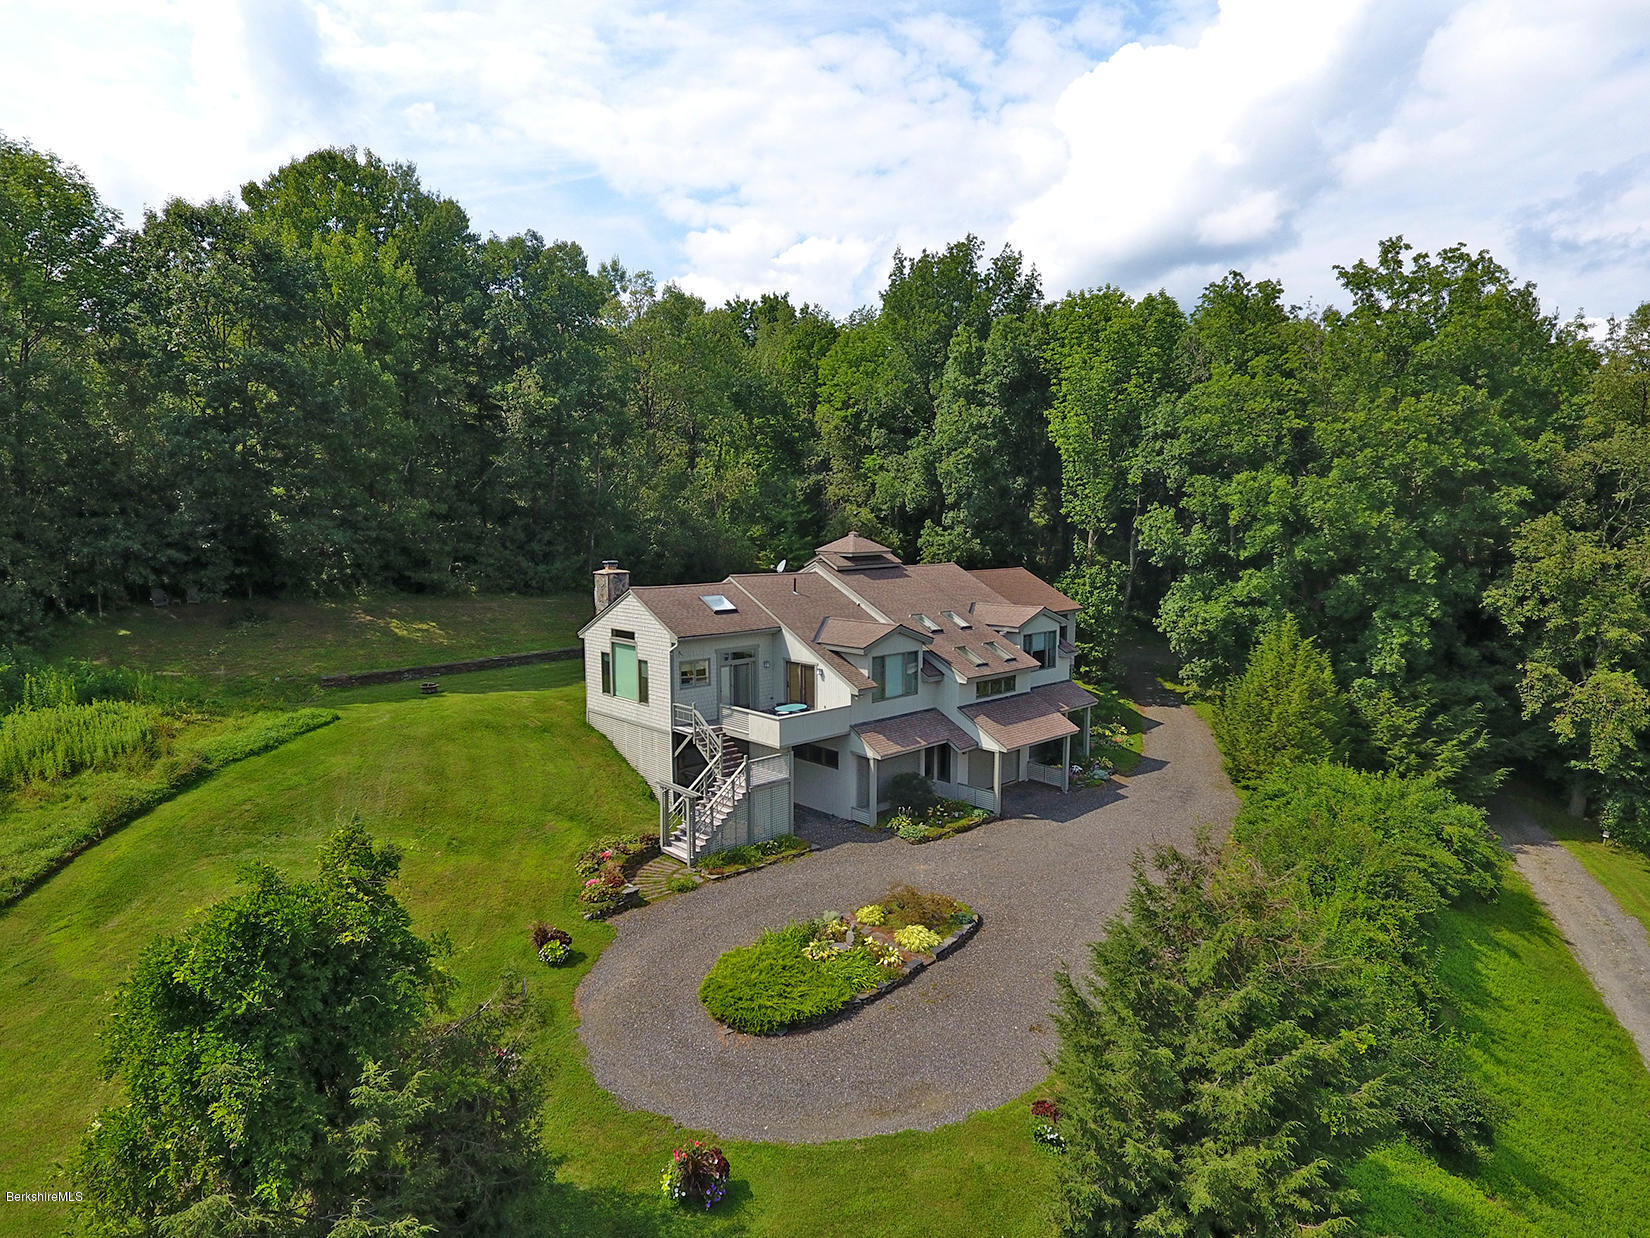 West Stockbridge Ma >> 5 Woodruff Rd West Stockbridge 01266 Berkshire Property Agents